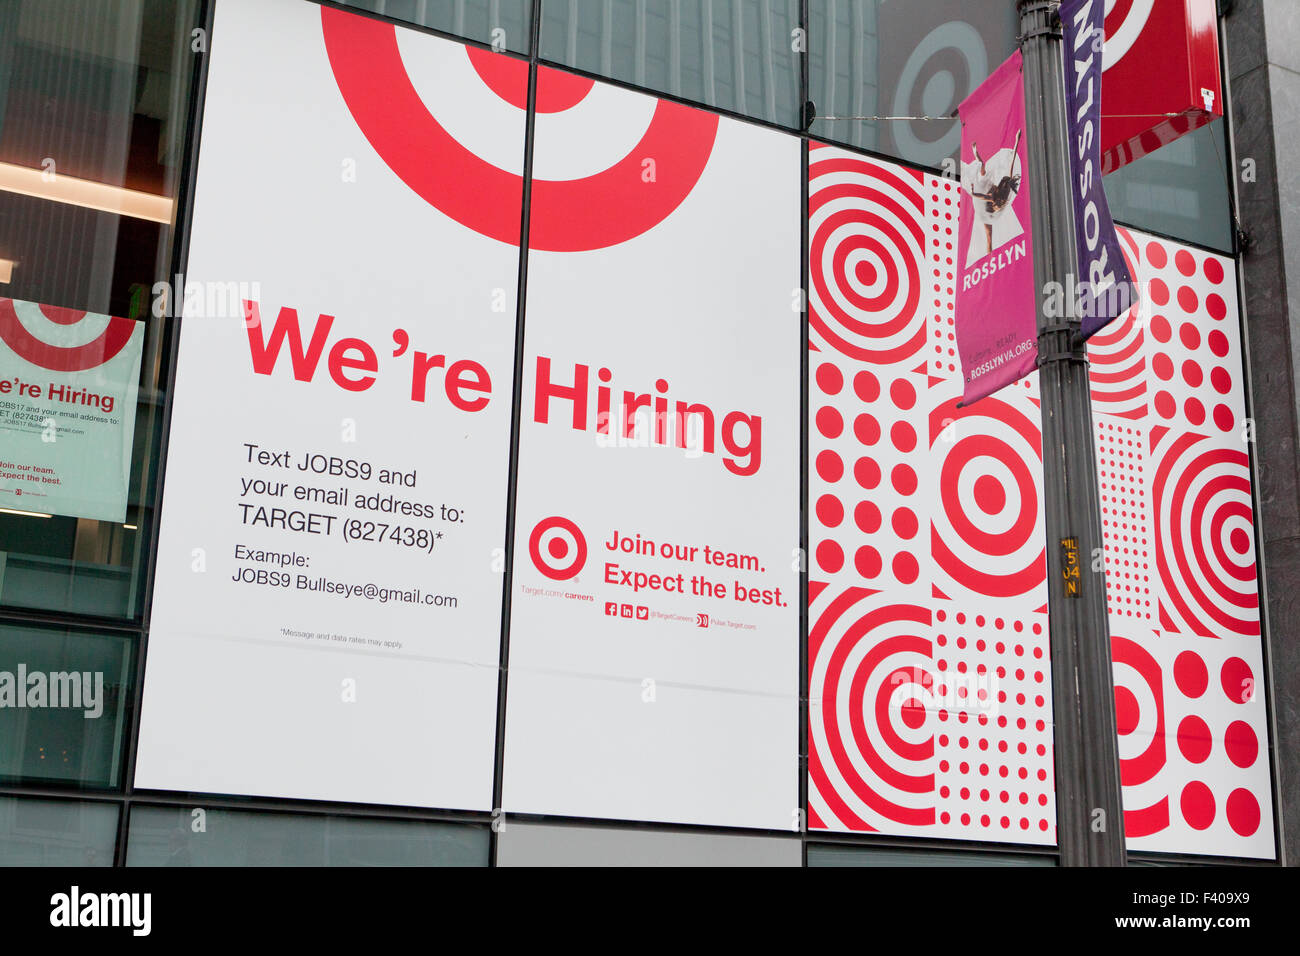 Target department store We're hiring sign  - USA - Stock Image